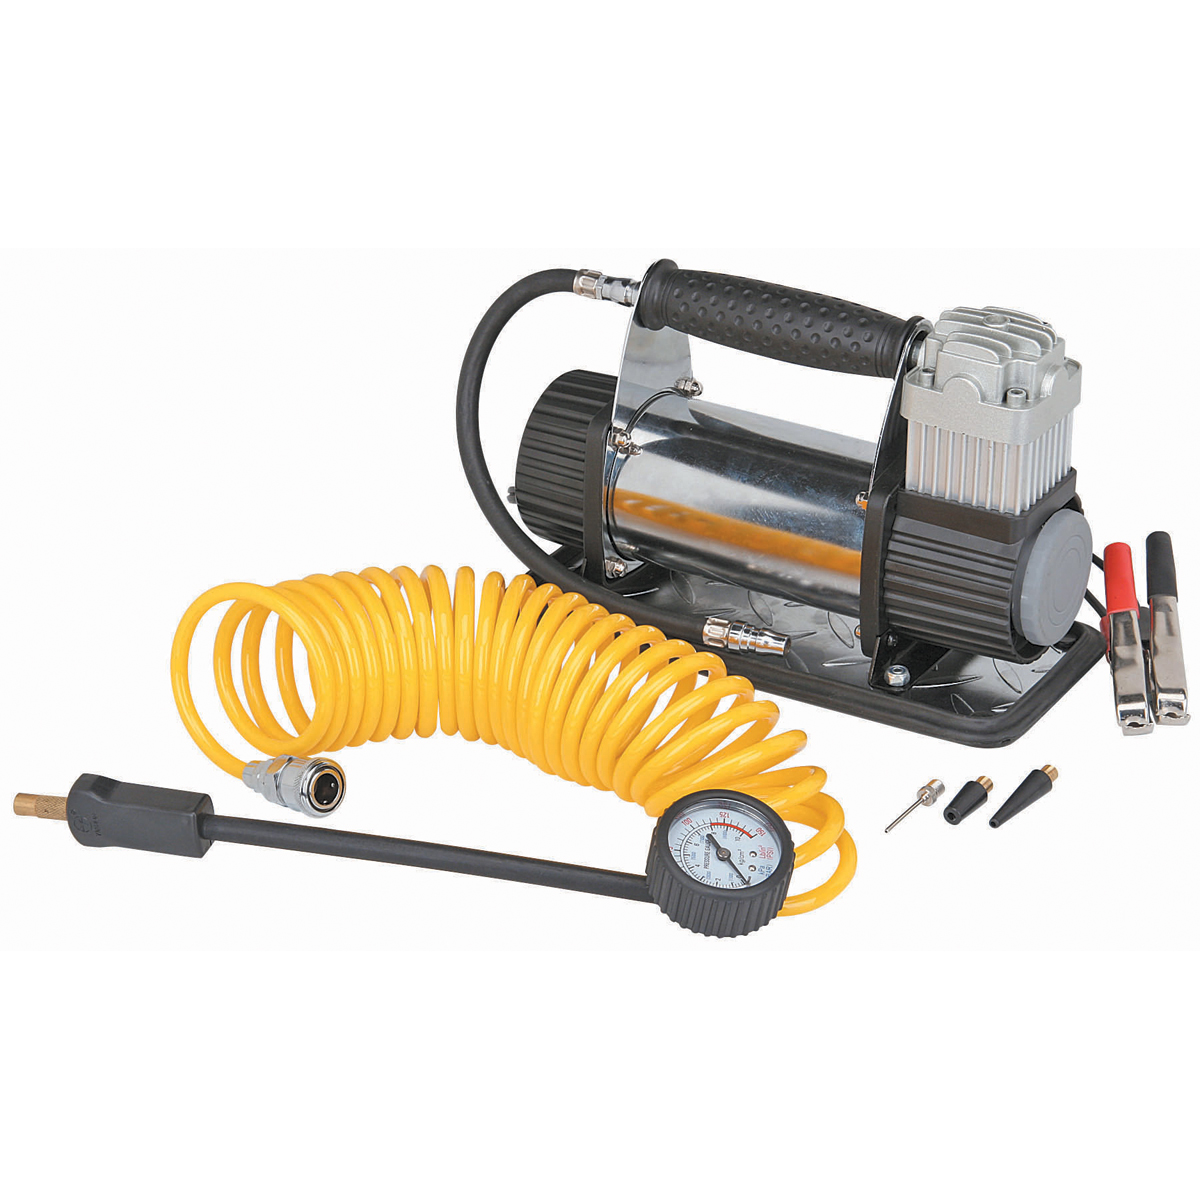 12V Air Compressor >> 12volt 150 Psi Compact Air Compressor